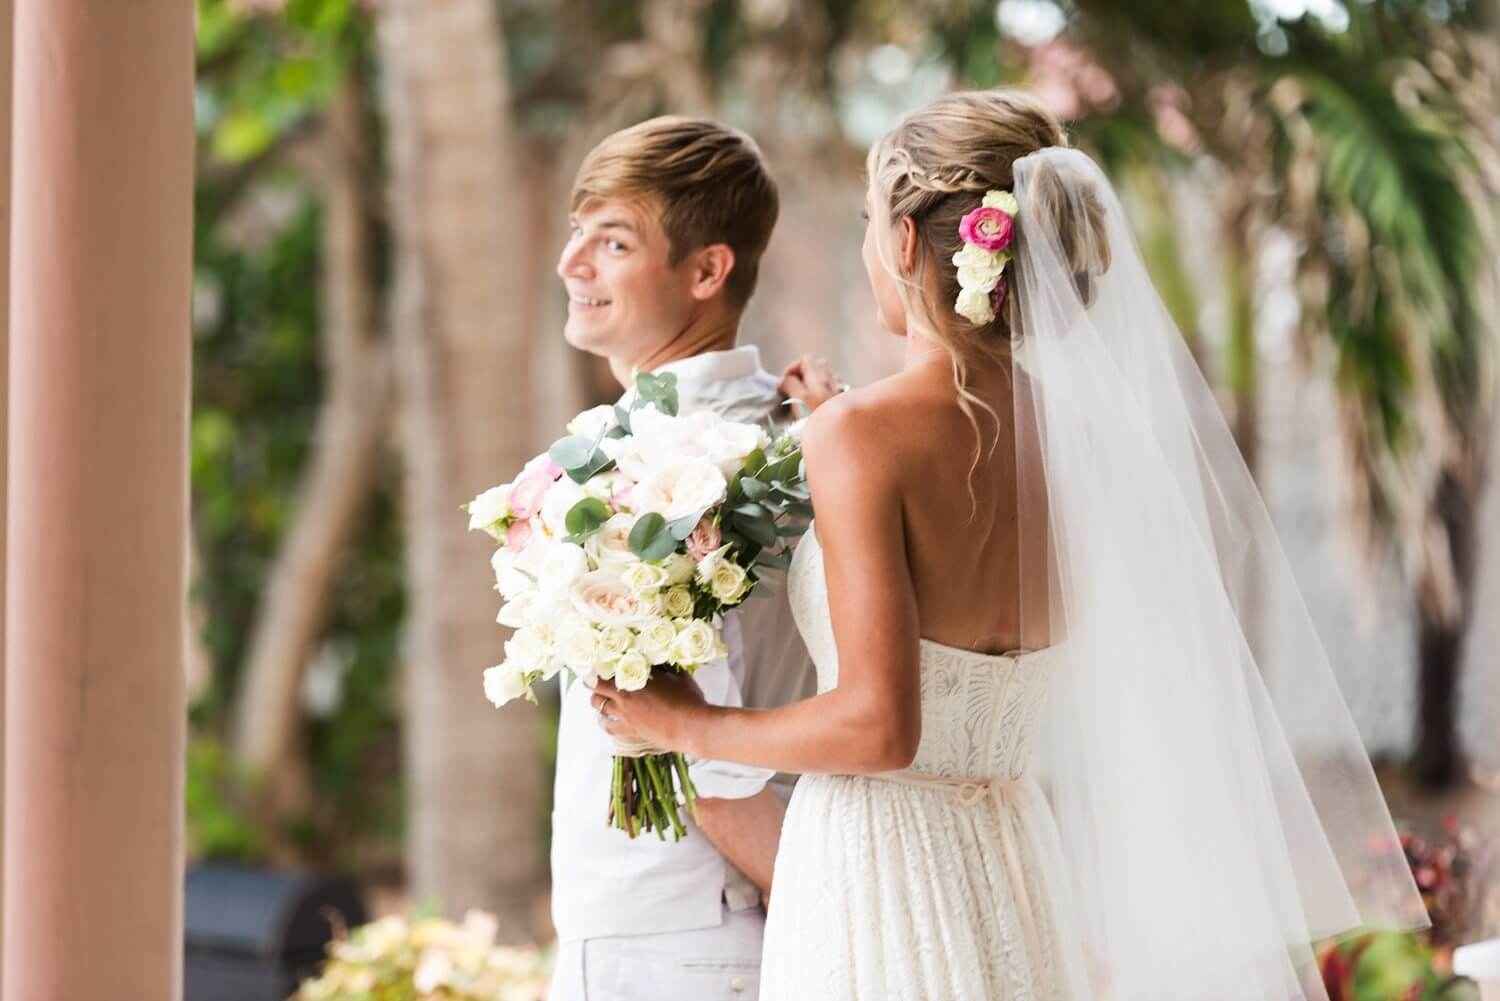 Freas Photography Southernmost House Wedding 48 - Boho Styled Key West Wedding at the Southernmost House in Key West, Florida